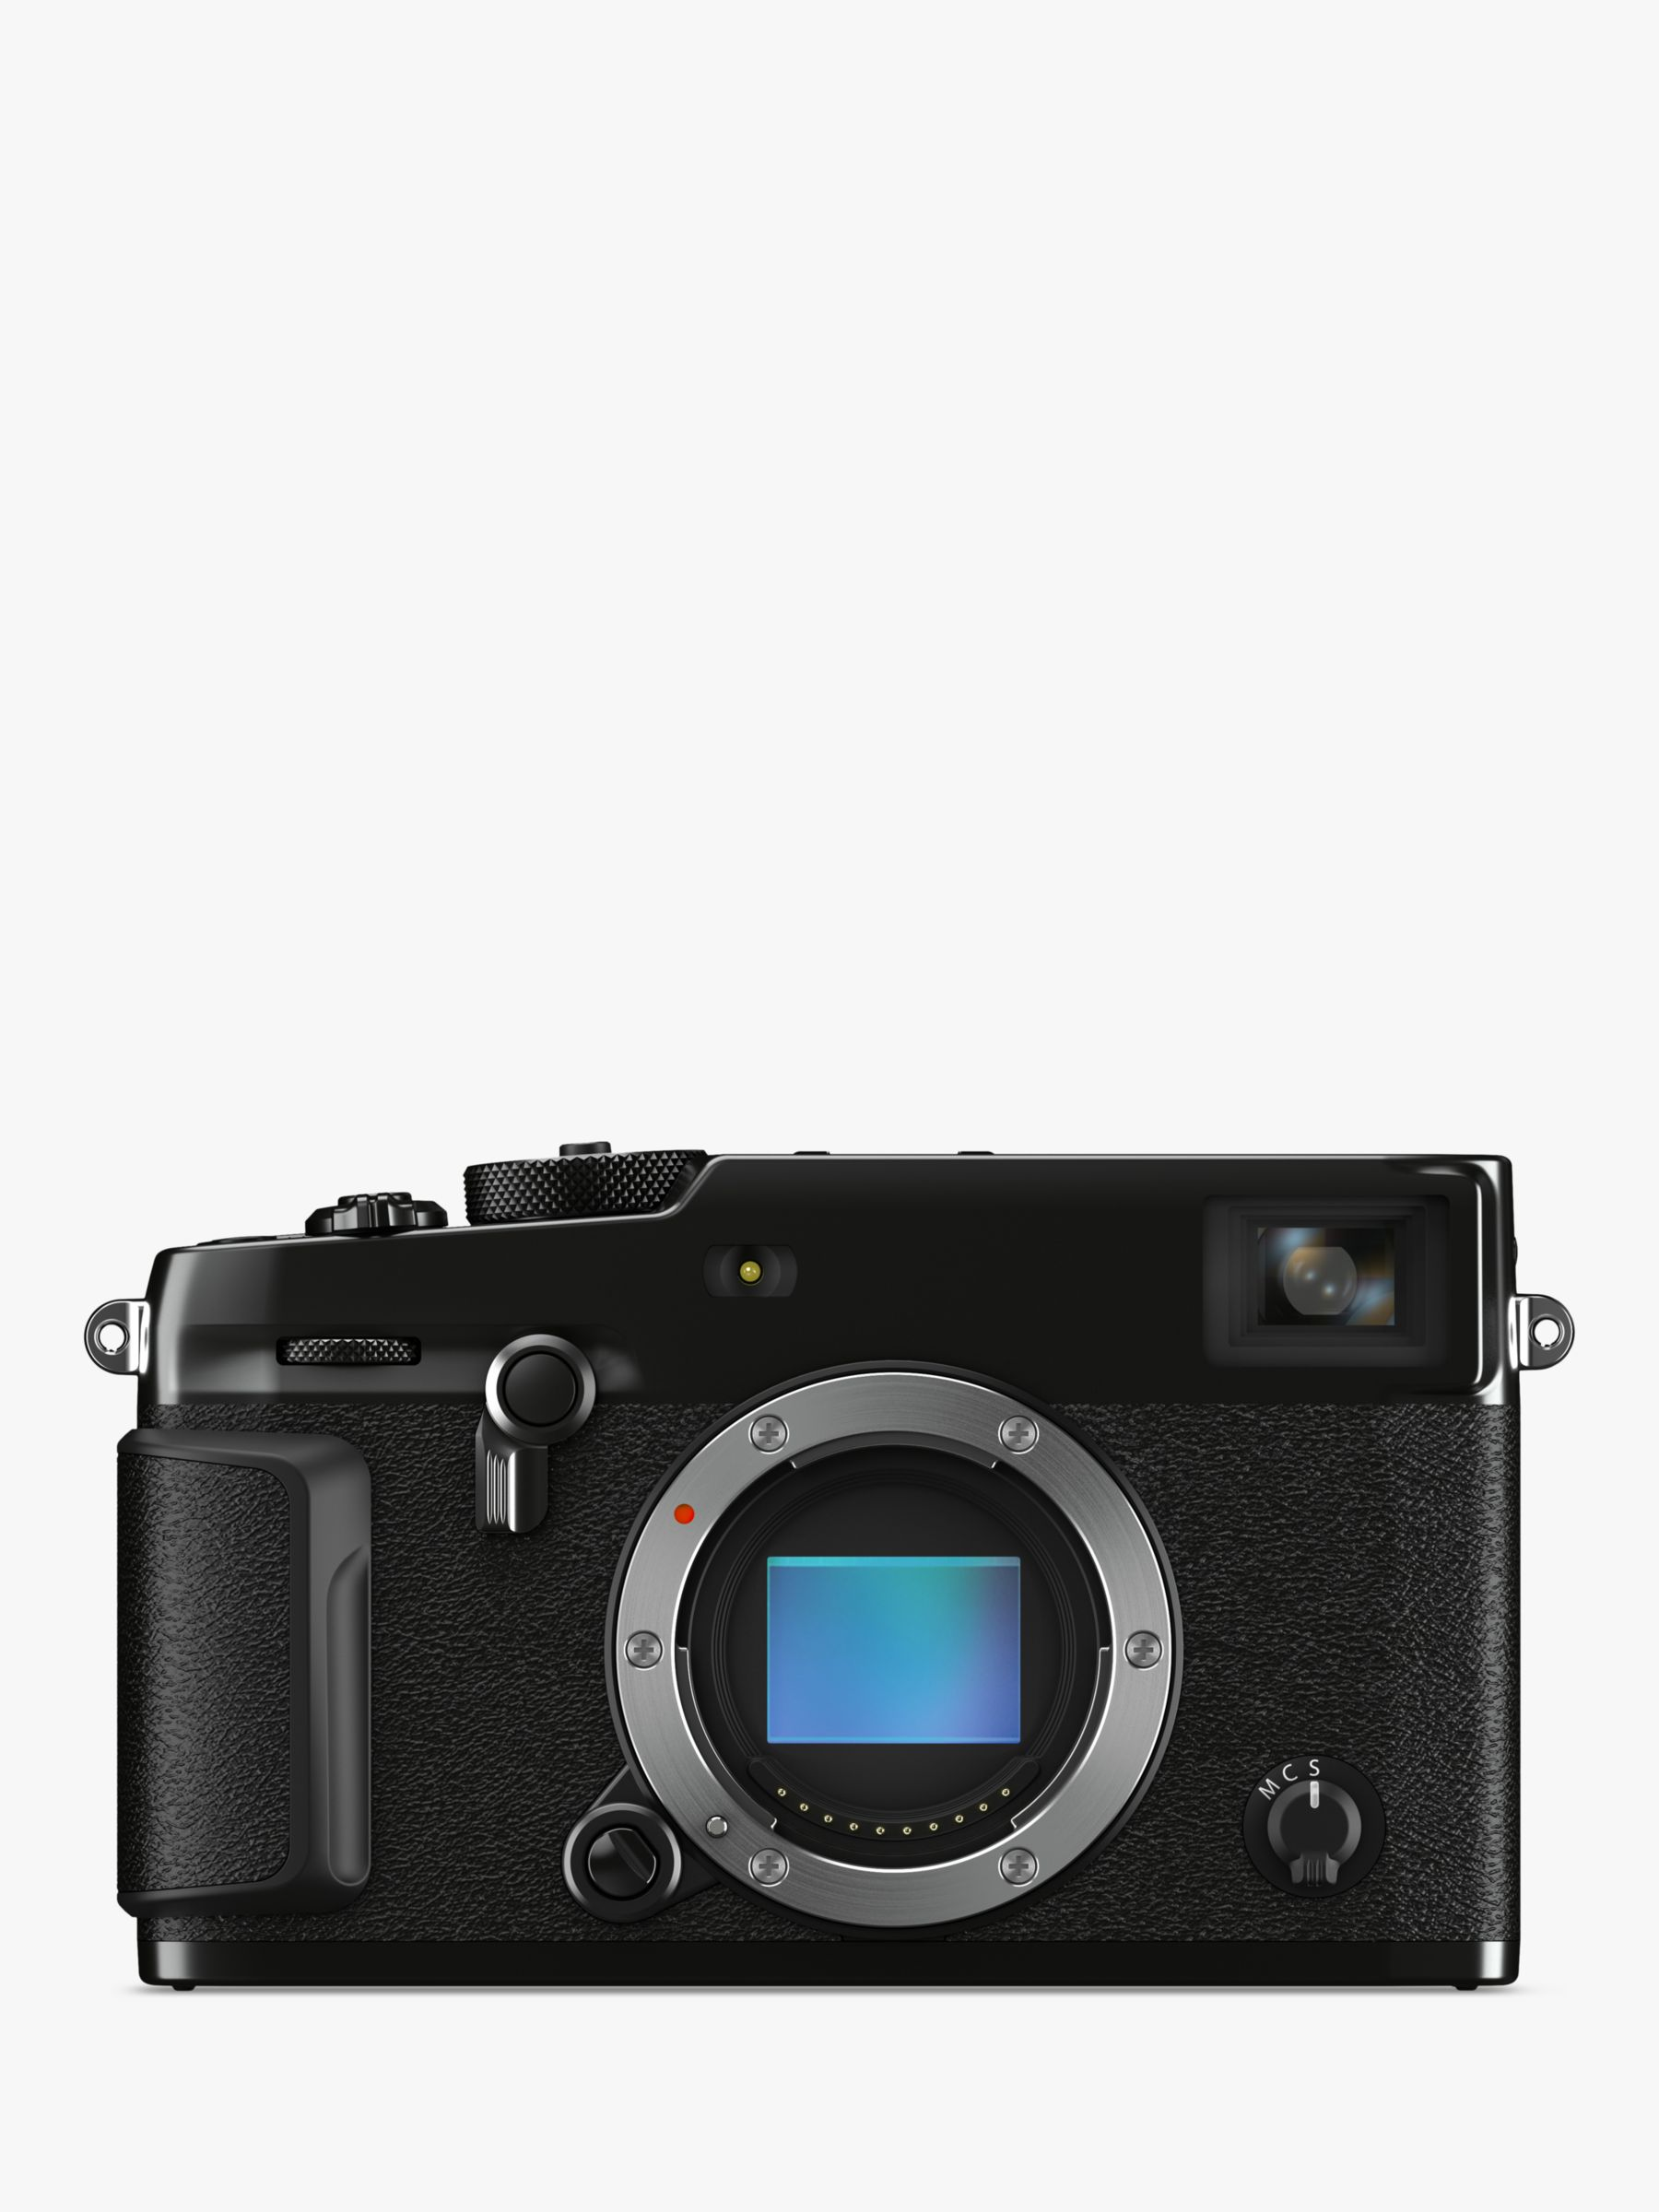 Fujifilm Fujifilm X-Pro 3 Compact System Camera, 4K Ultra HD, 26.1MP, Wi-Fi, Bluetooth, EVF, OVF, 3 LCD Tilting Touch Screen, Body Only, Black